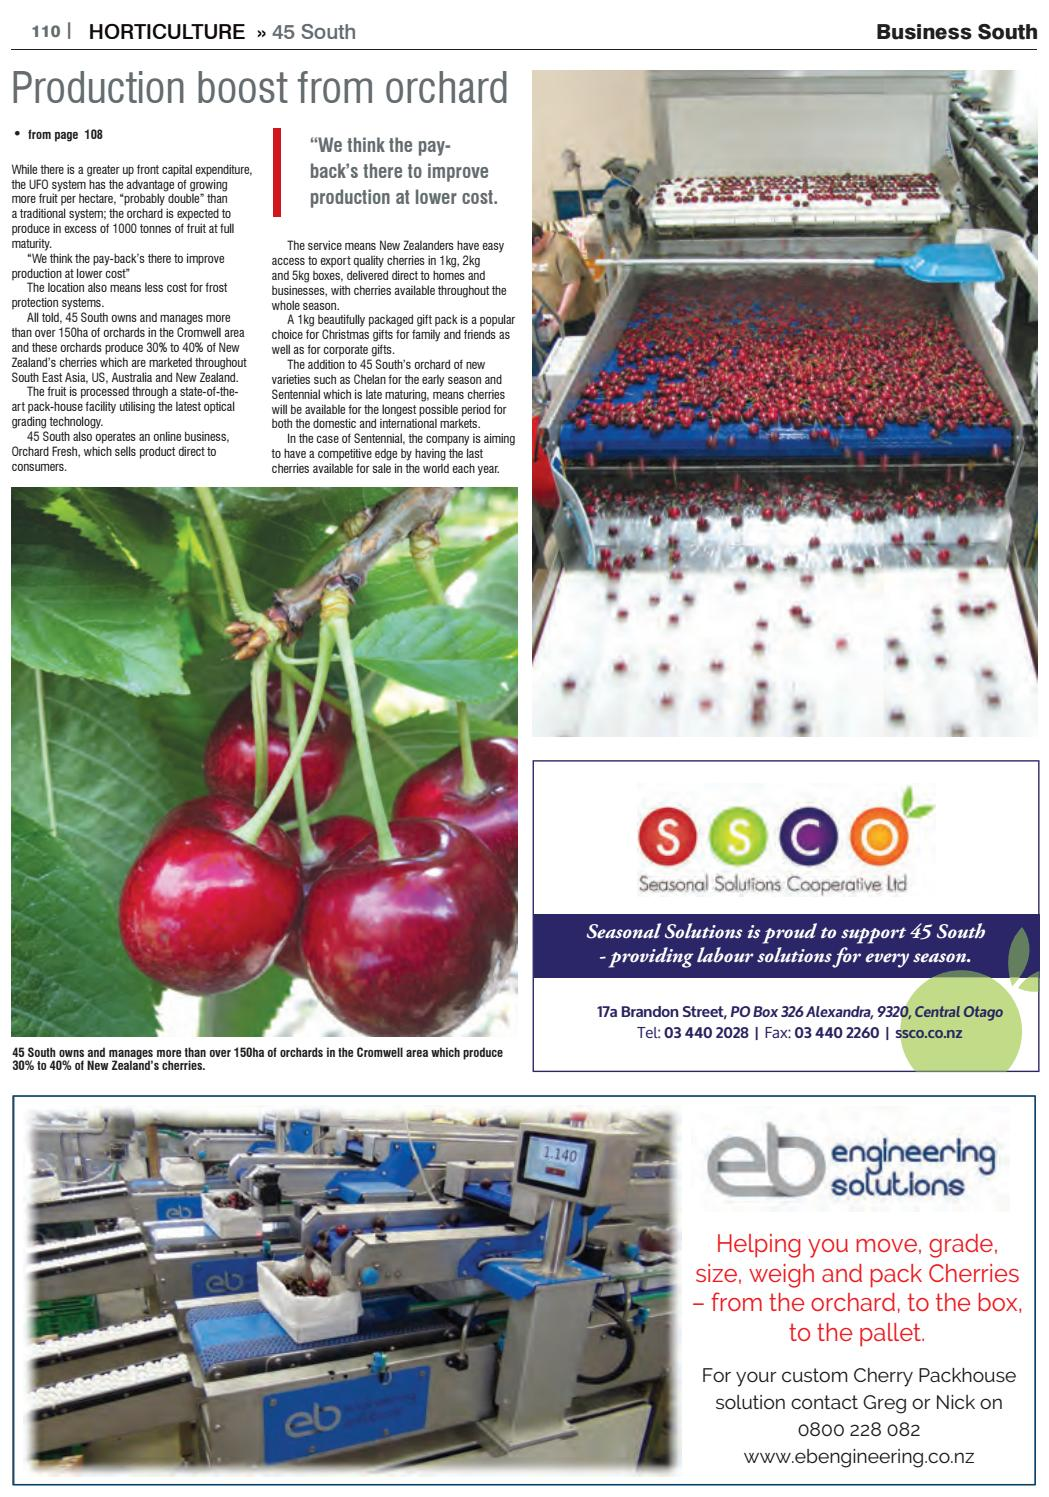 Business South - Volume 24, Issue 5 - 2016 by Waterford